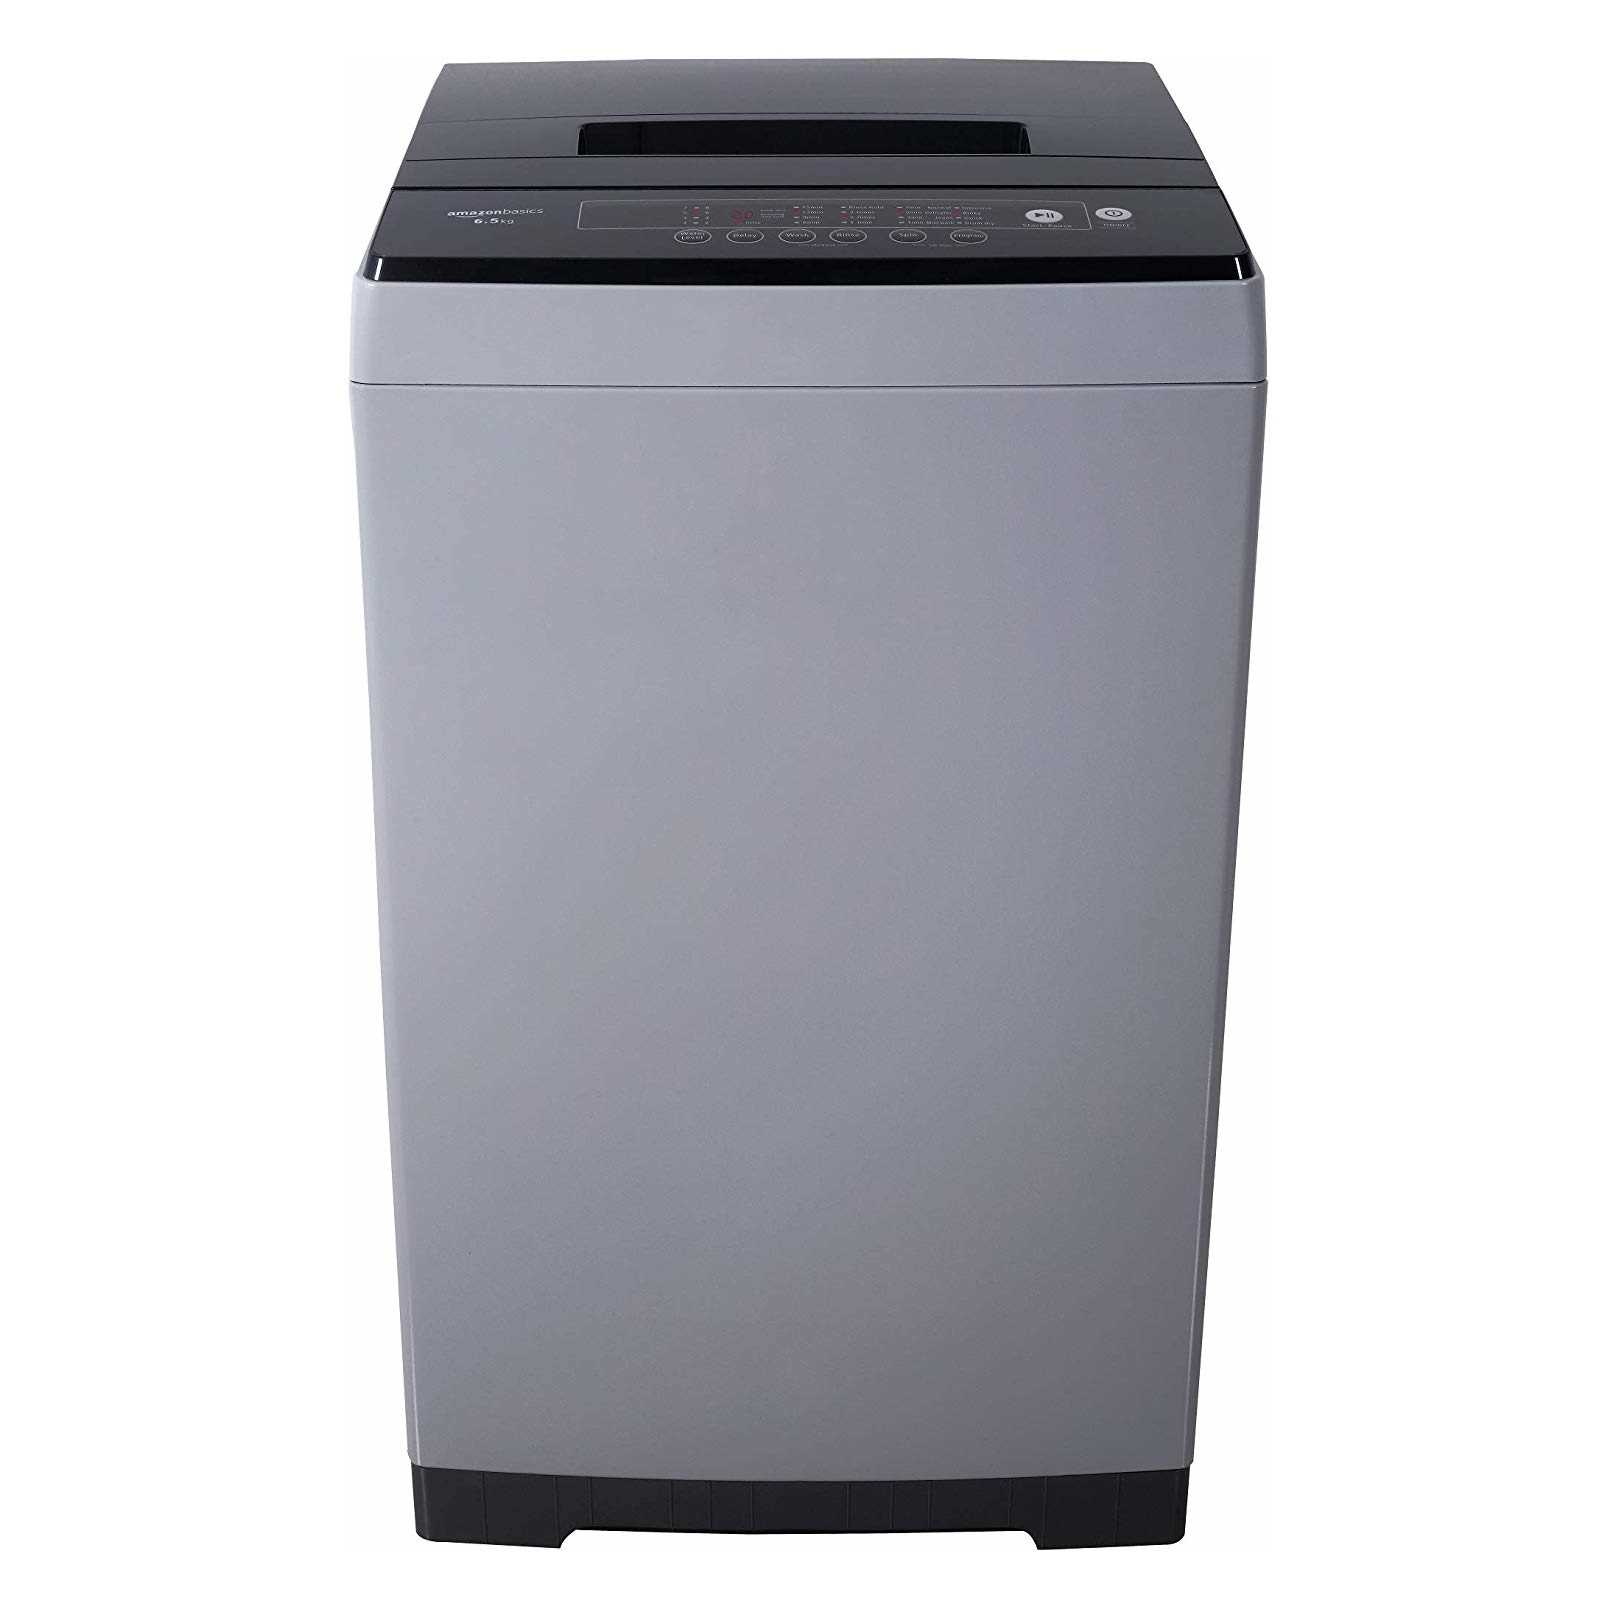 AmazonBasics AB6FAFL009 6.5 Kg Fully Automatic Top Loading Washing Machine